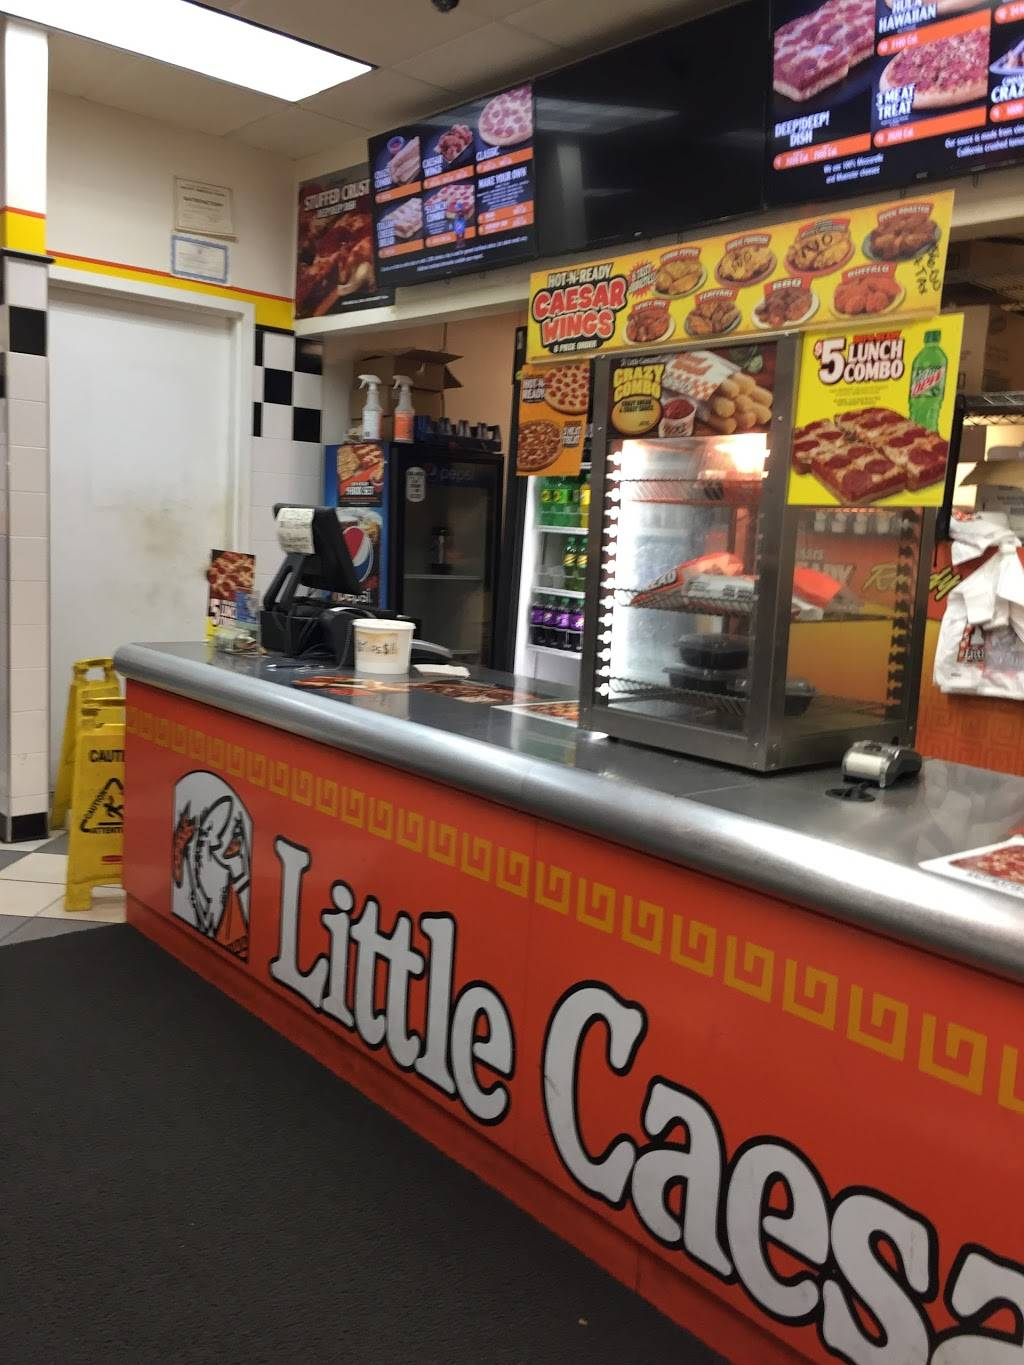 Little Caesars Pizza | meal takeaway | 4809 Park Ave, Union City, NJ 07087, USA | 2017585828 OR +1 201-758-5828